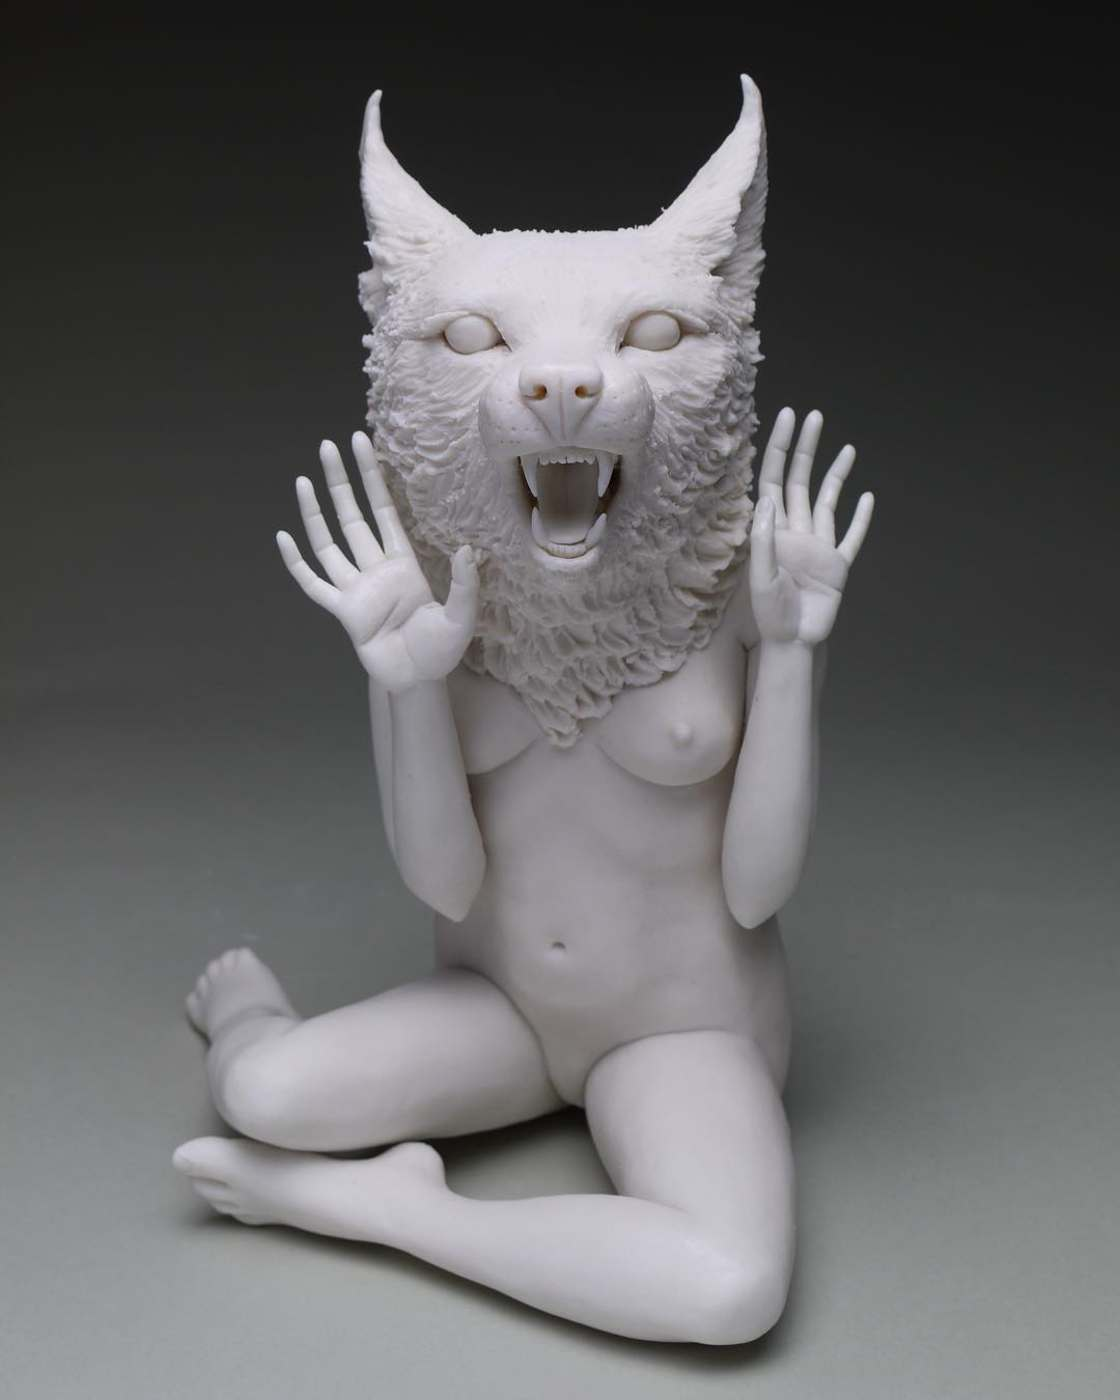 Entangled Wonders - The animal girls of Crystal Morey